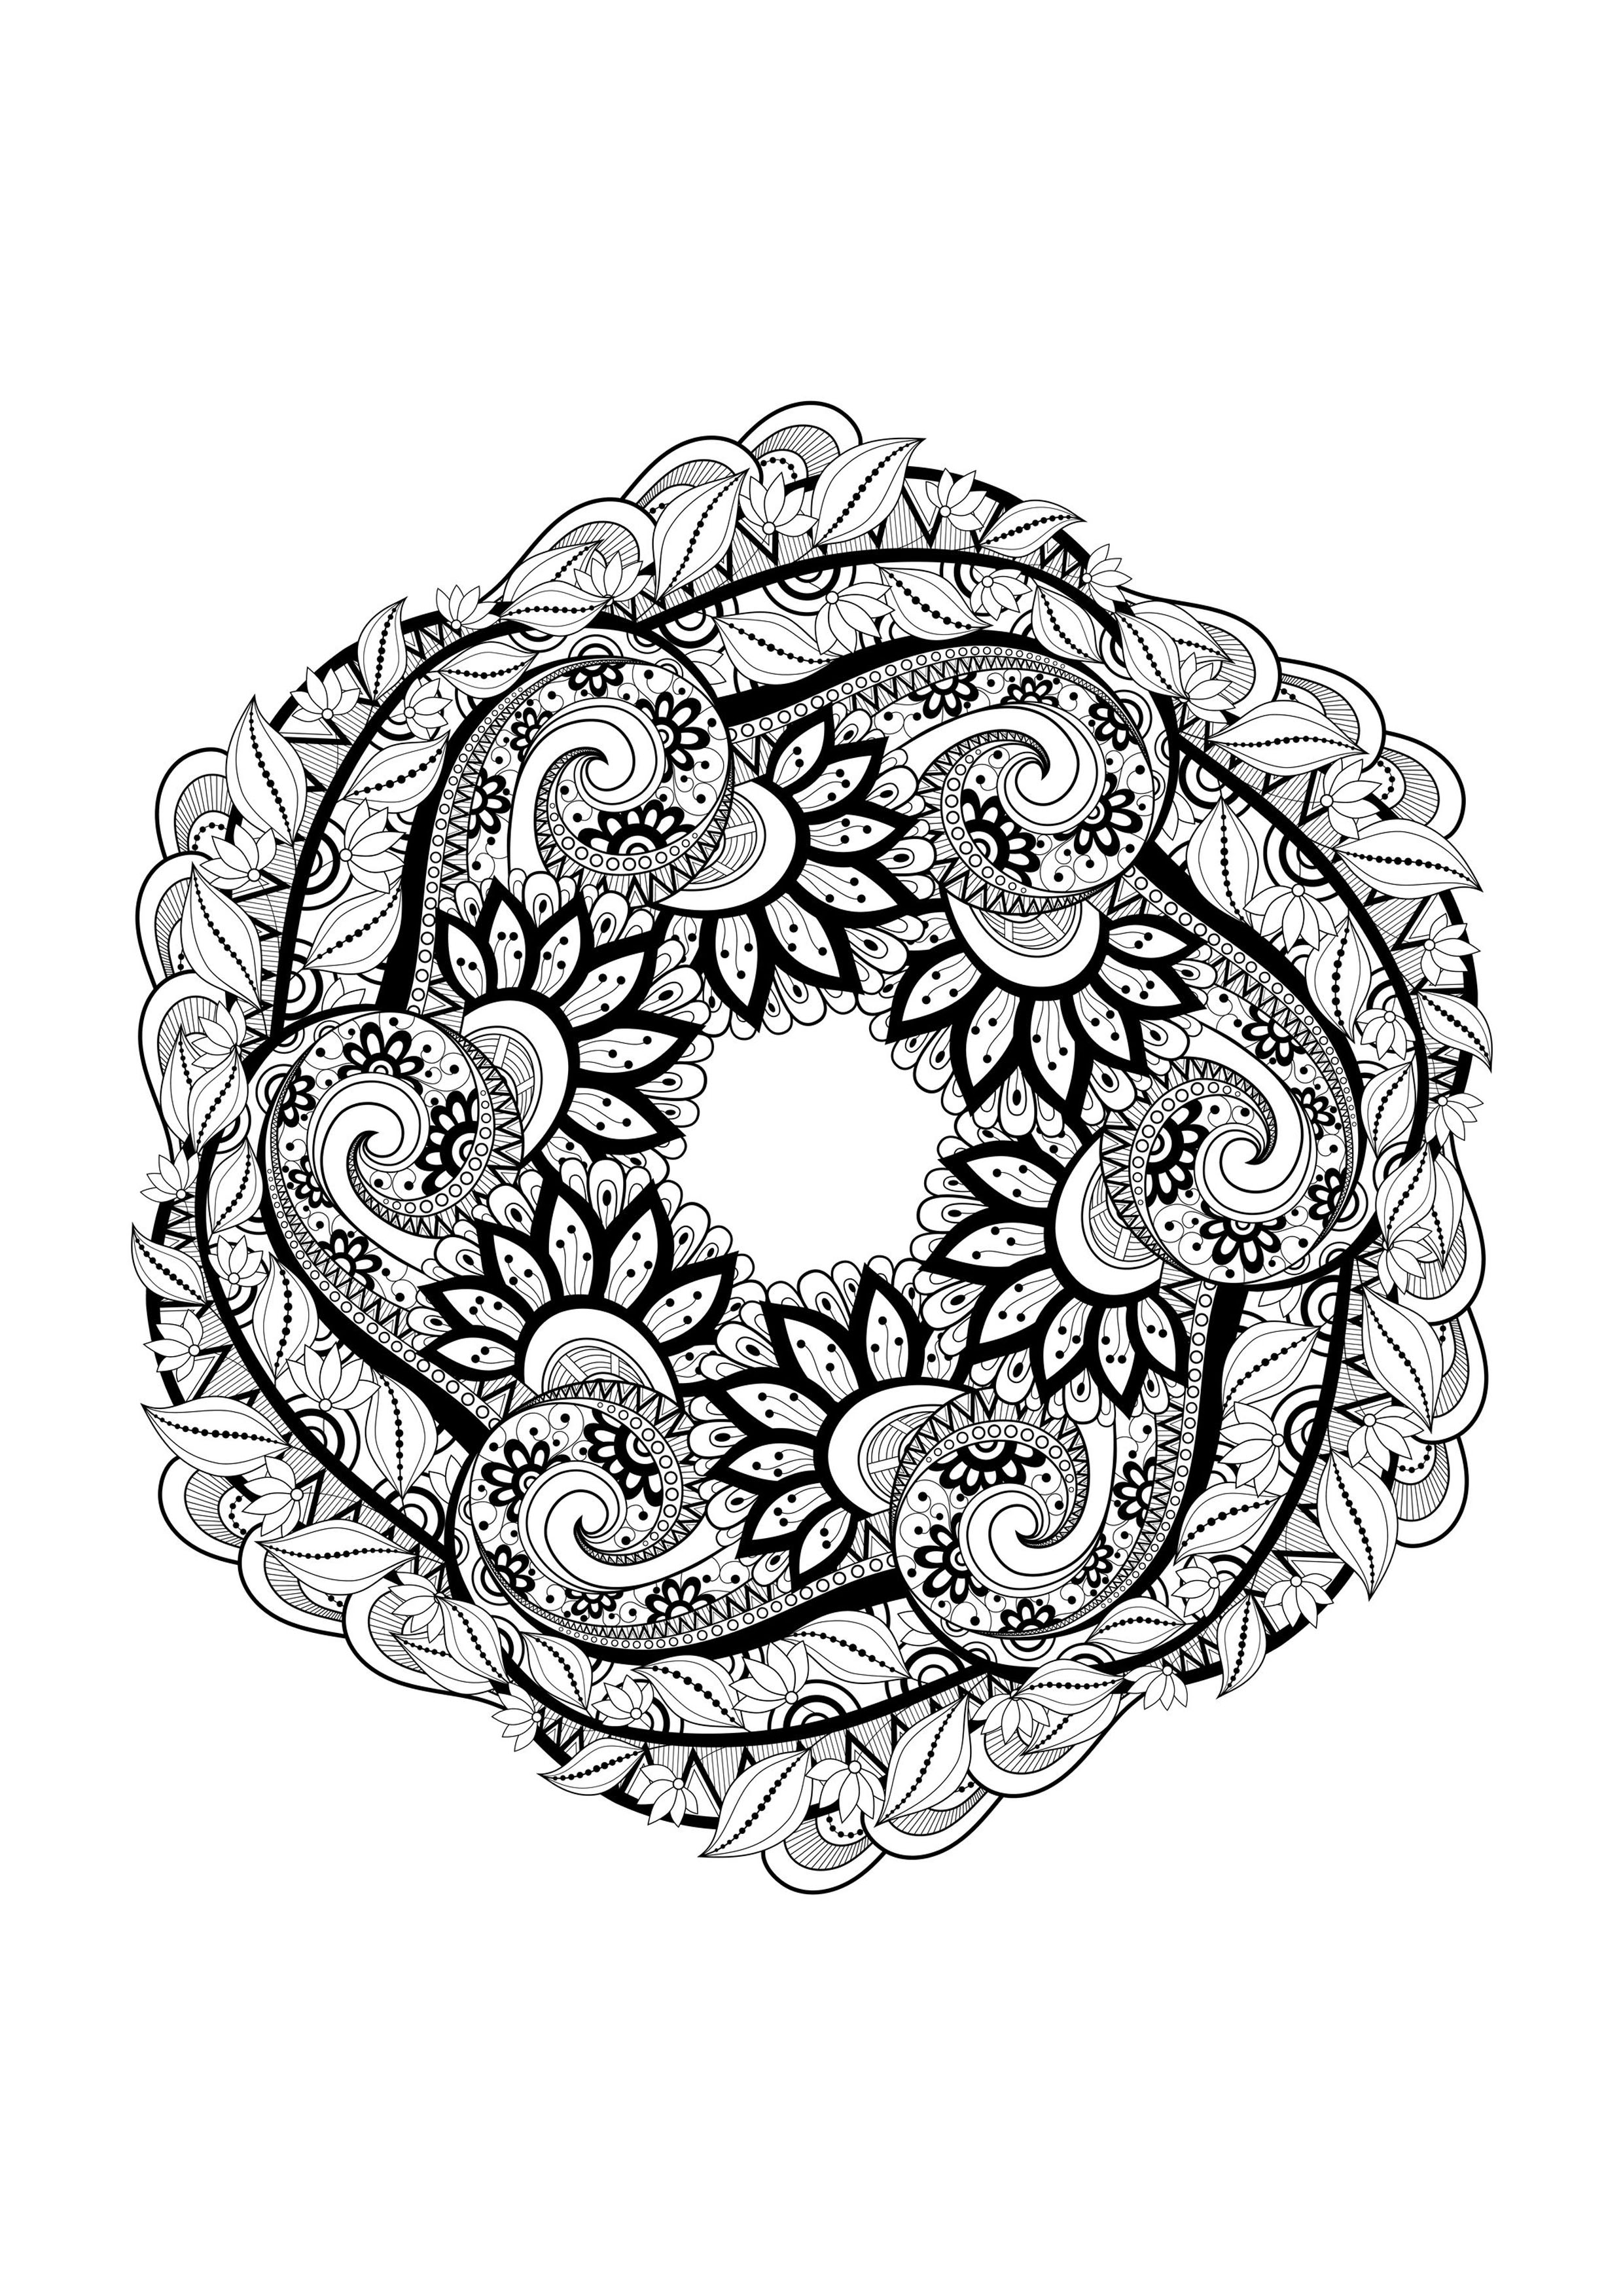 Mandala With Flowers And Leaves Full Of Details - Very intérieur Mandala A Dessiner